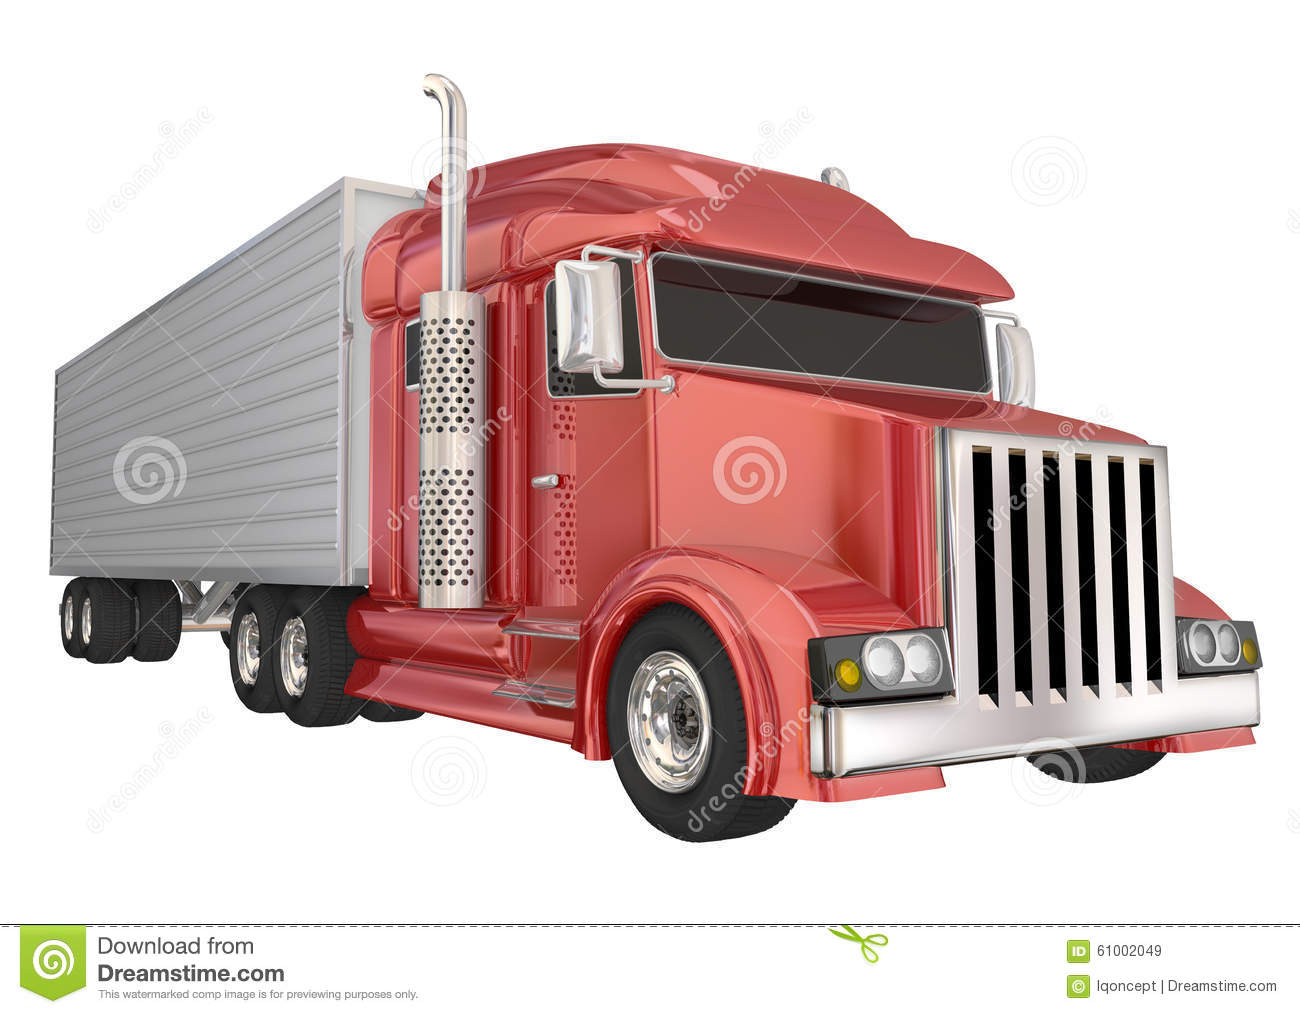 how to drive a big rig truck